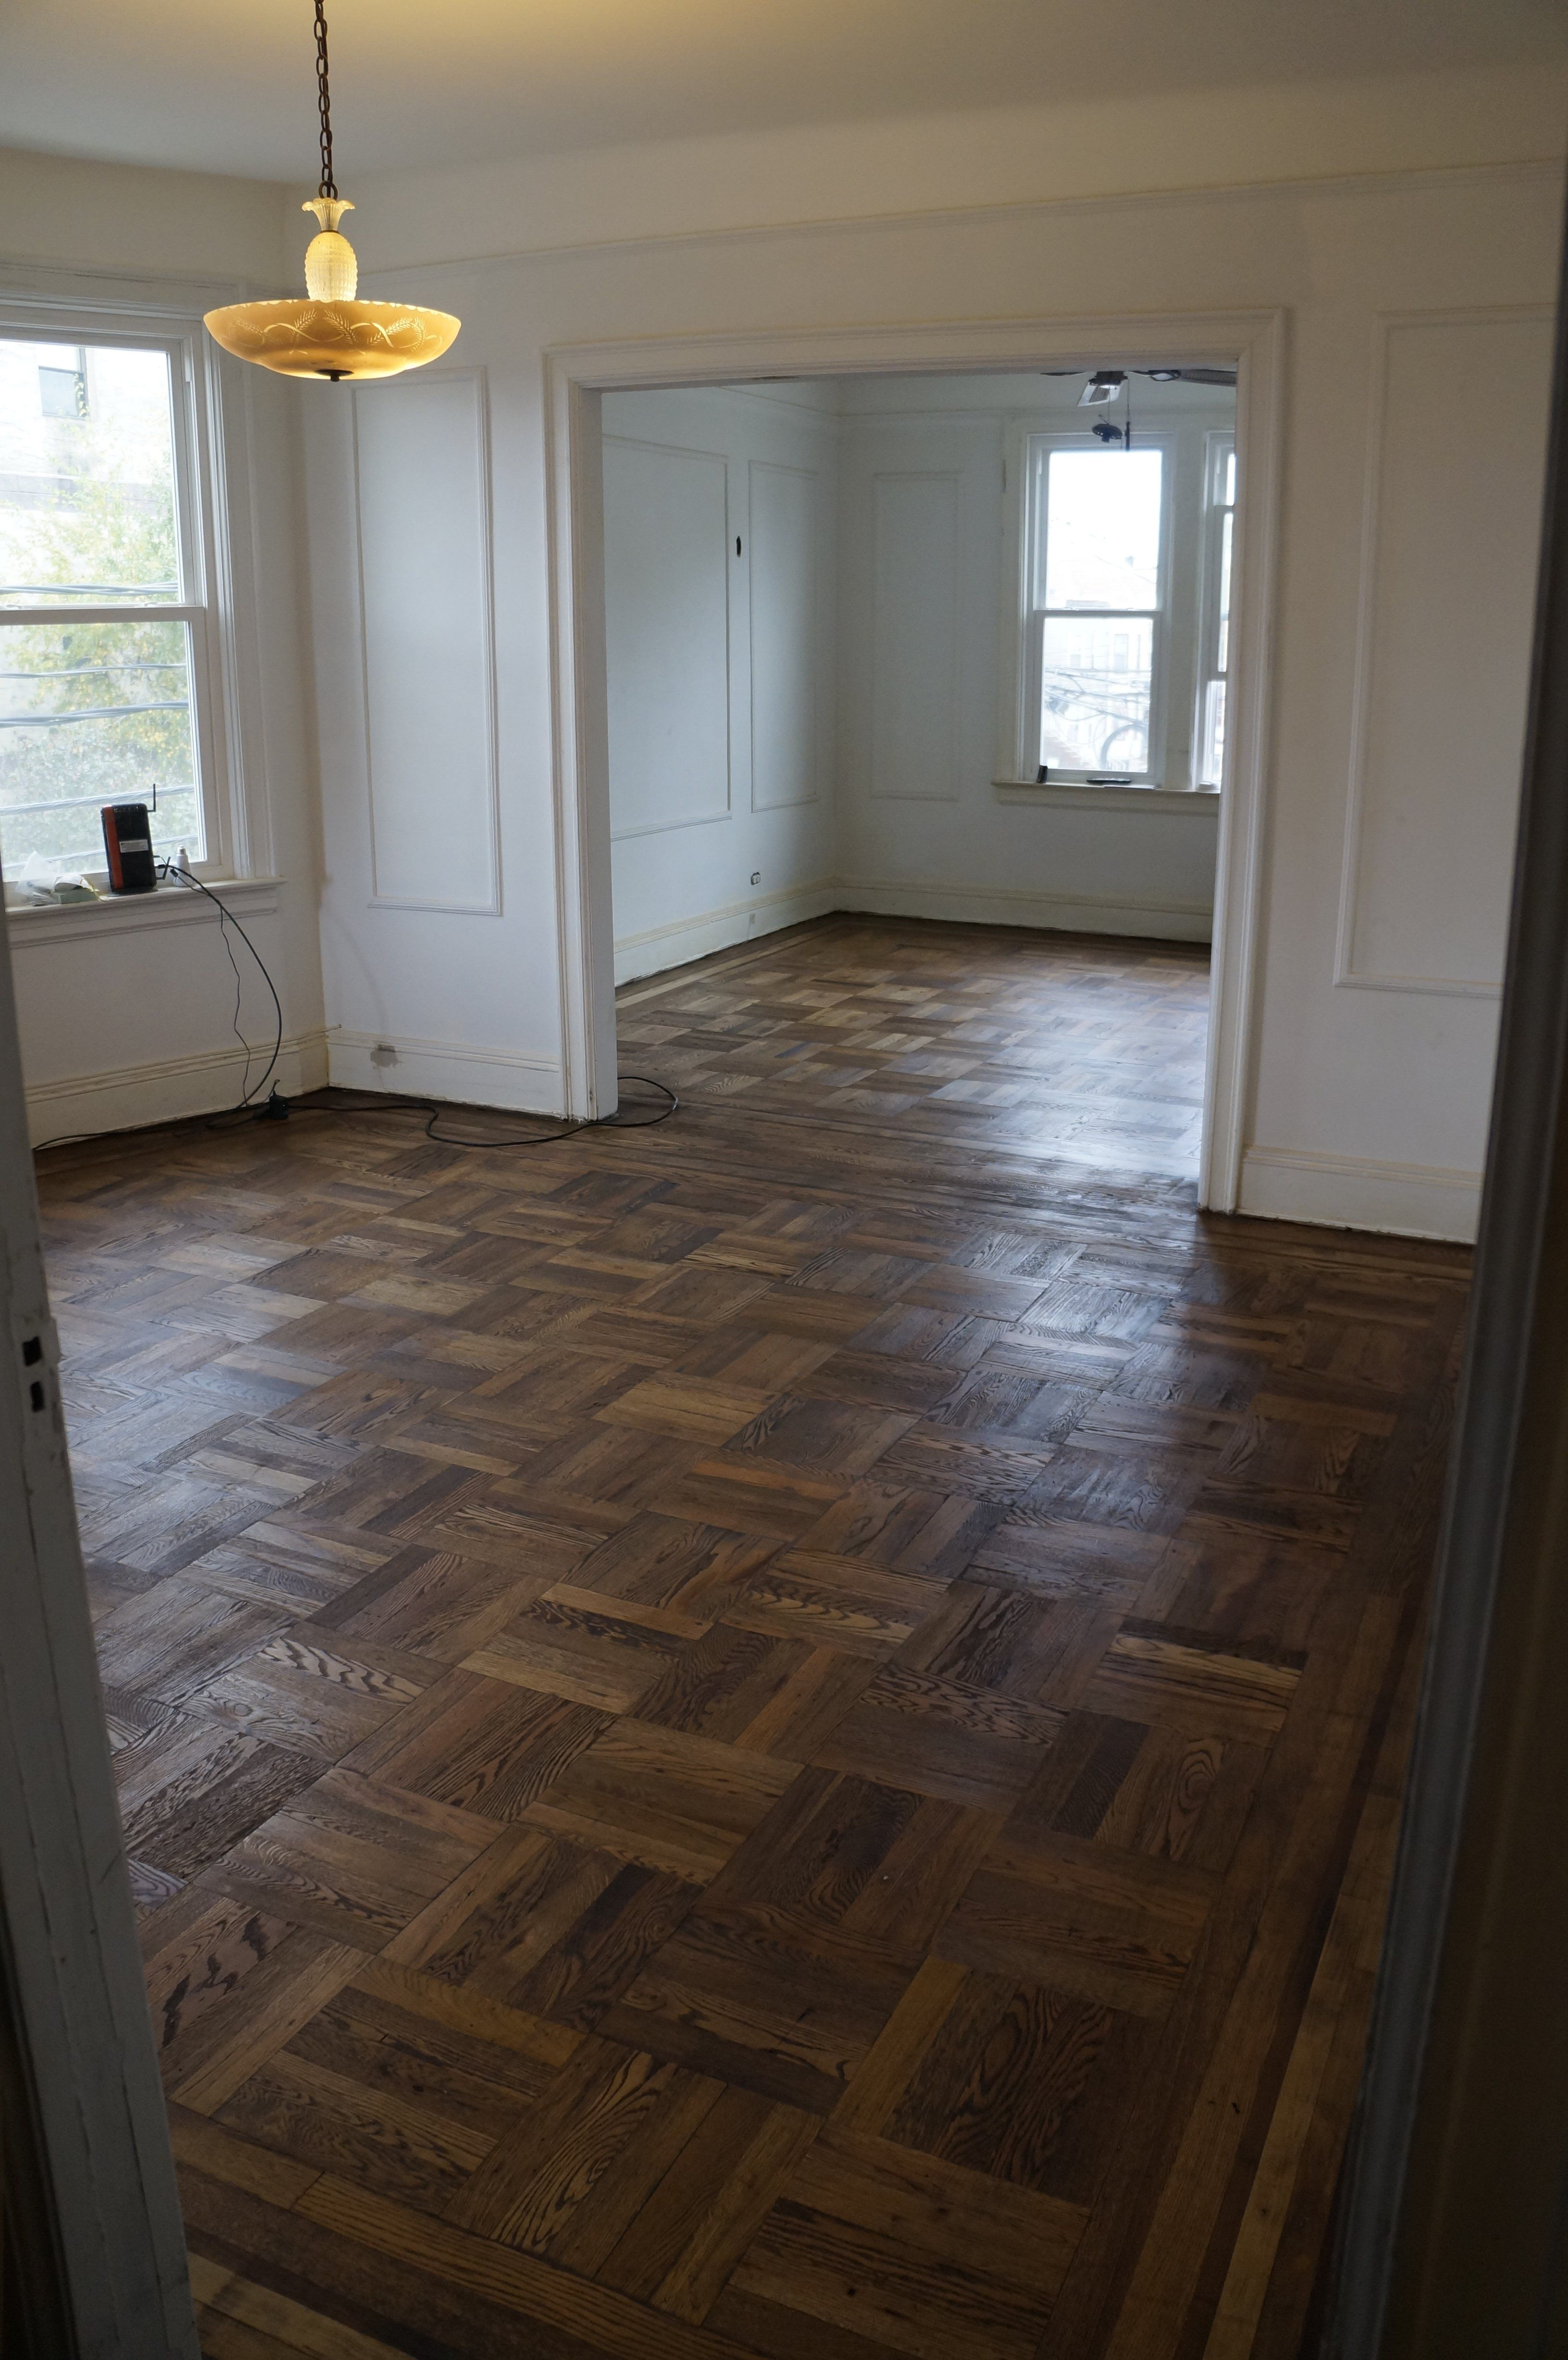 Holzvertäfelung Reparieren How To Get Black Marks Off Kitchen Floor Flooring Pinterest